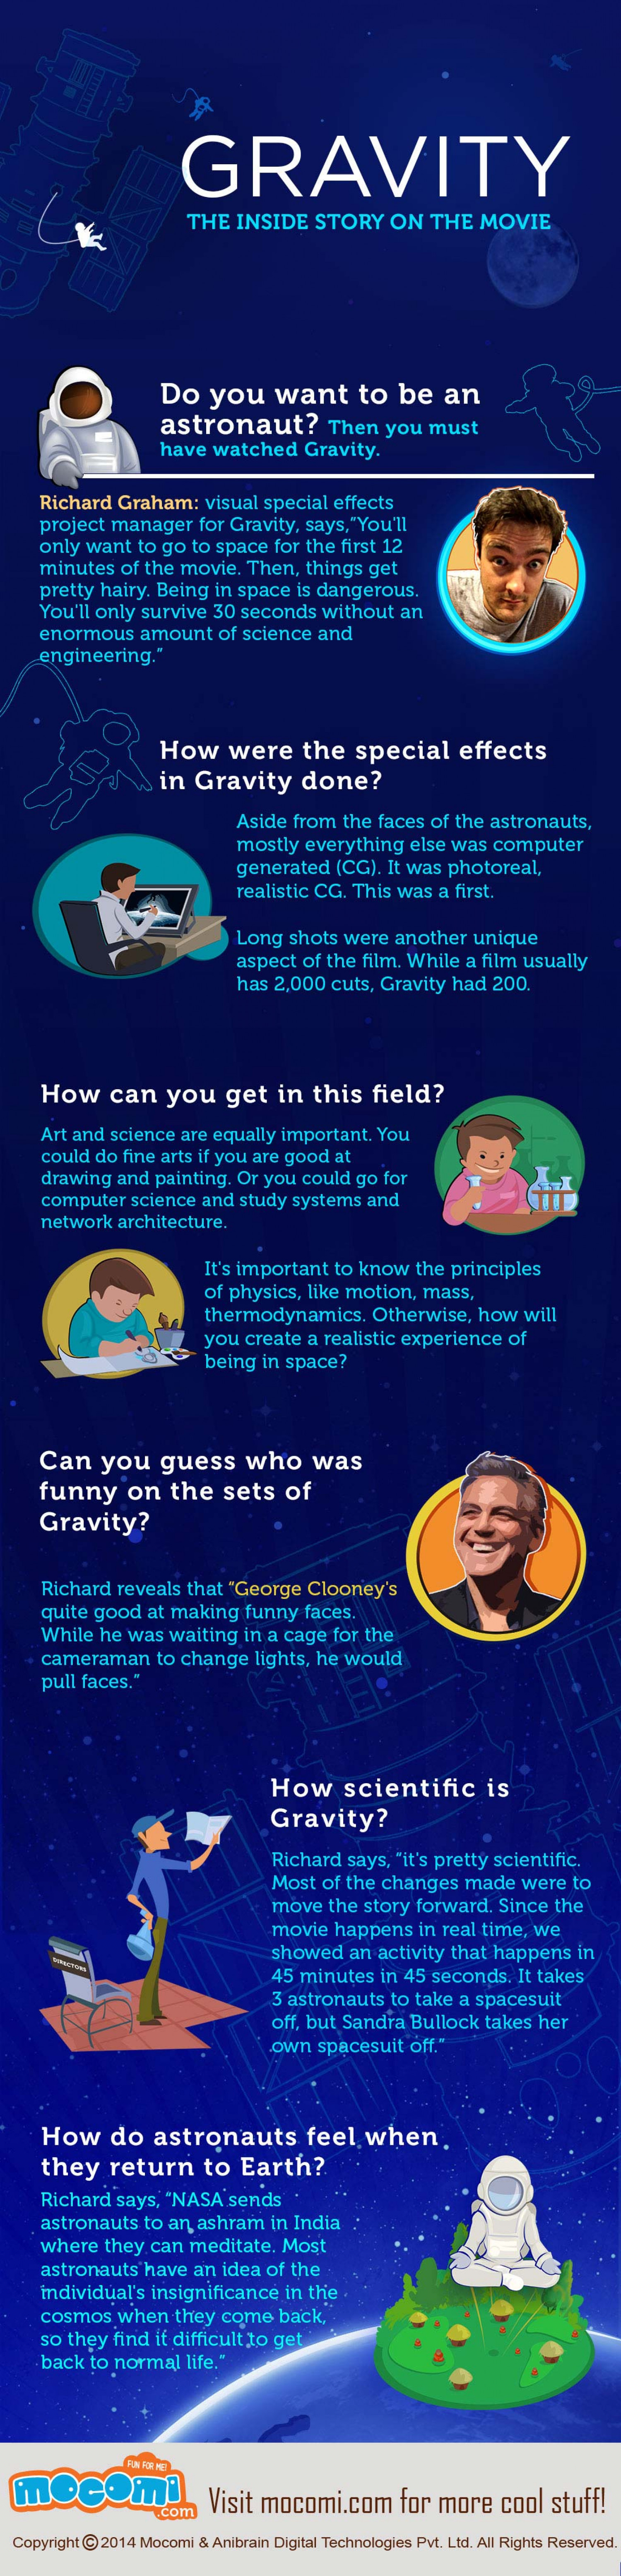 Gravity – The Inside Story on The Movie Infographic